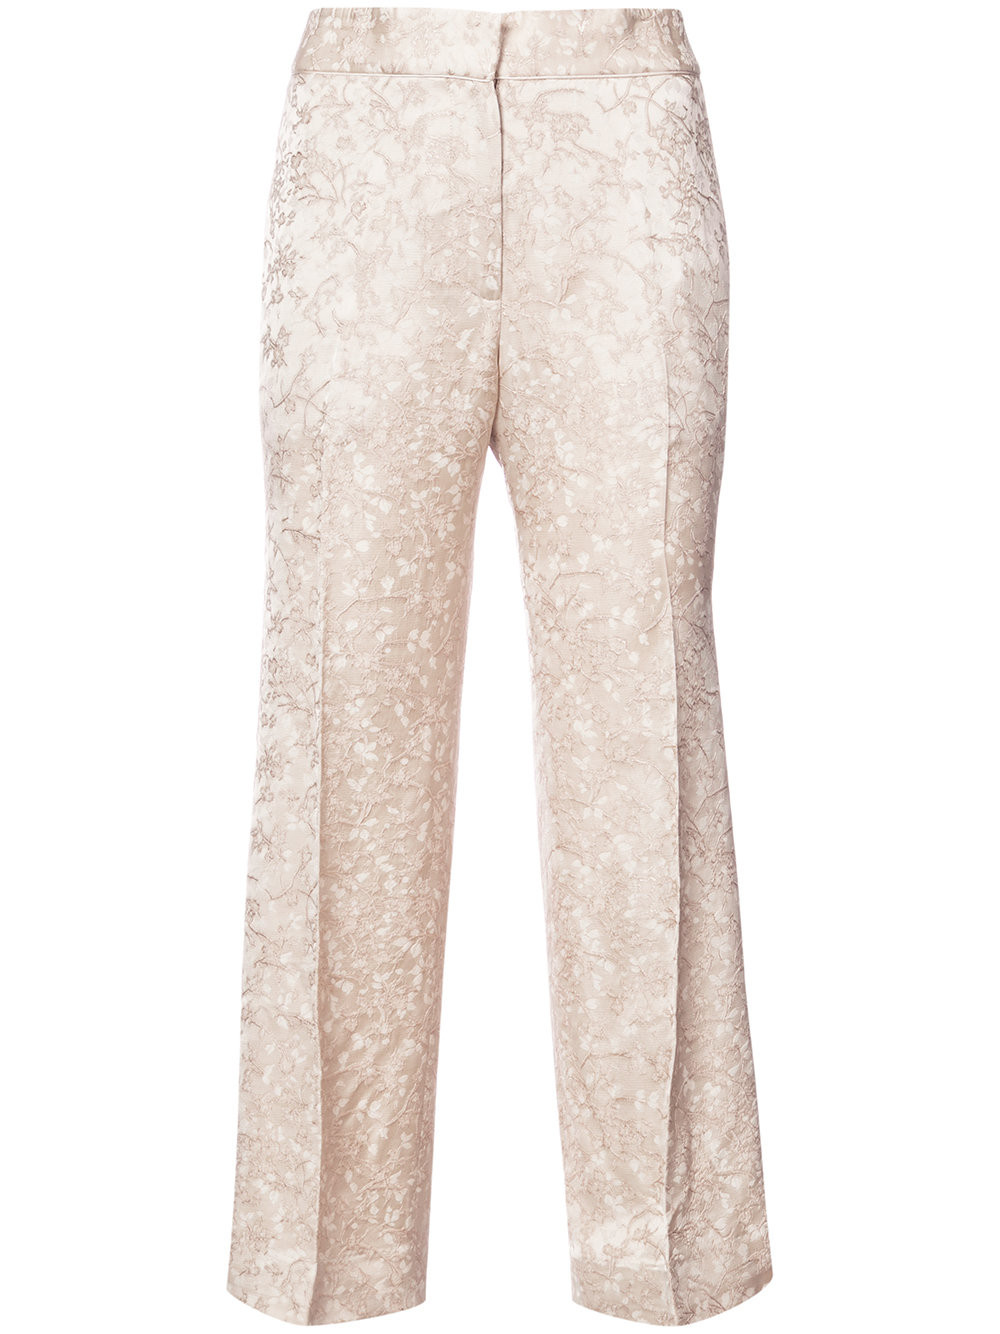 PROTAGONIST CROPPED TAILORED TROUSERS